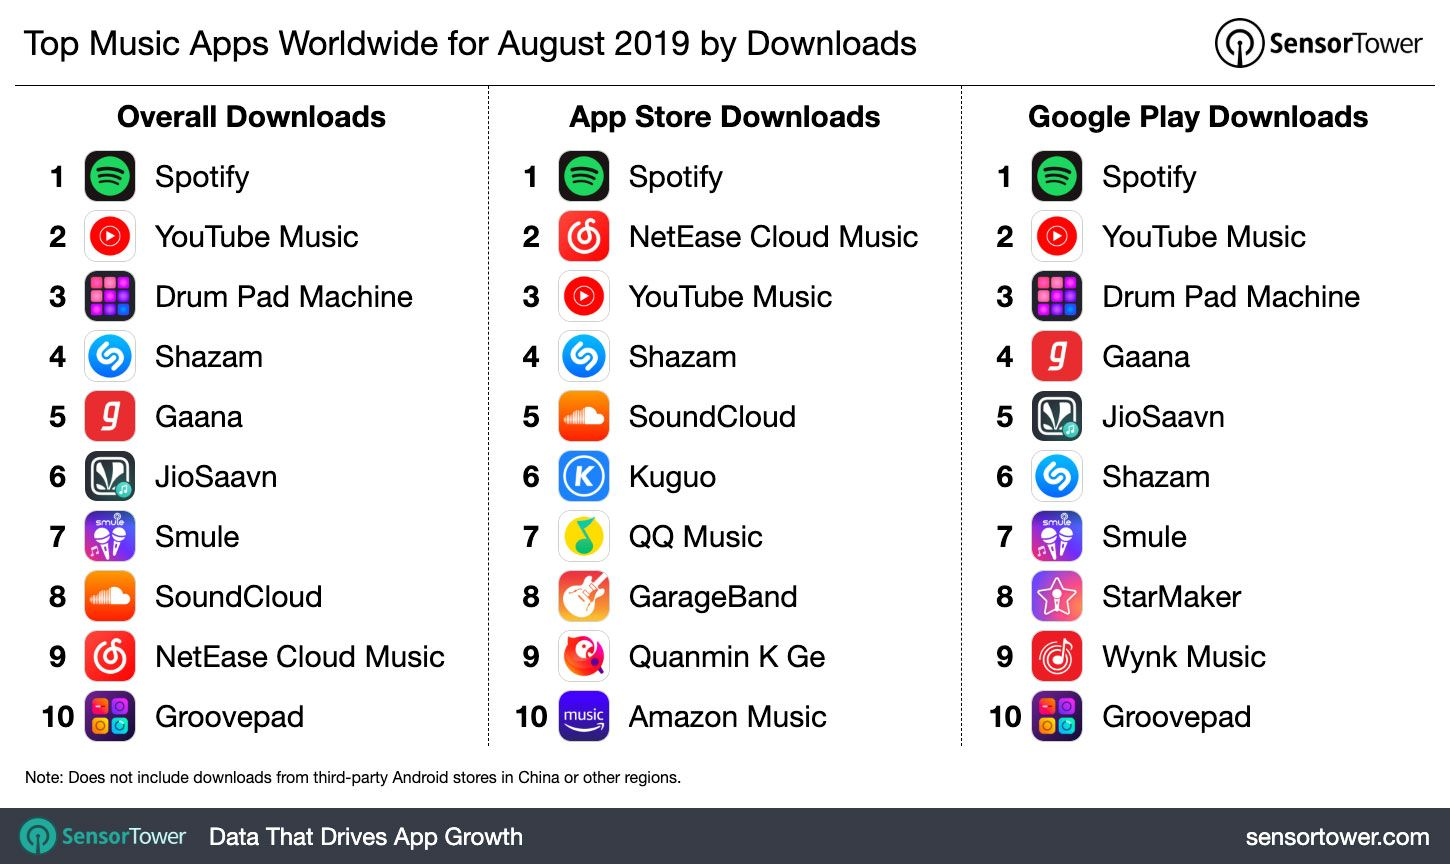 Top Music Apps Worldwide For August 2019 By Downloads Game App